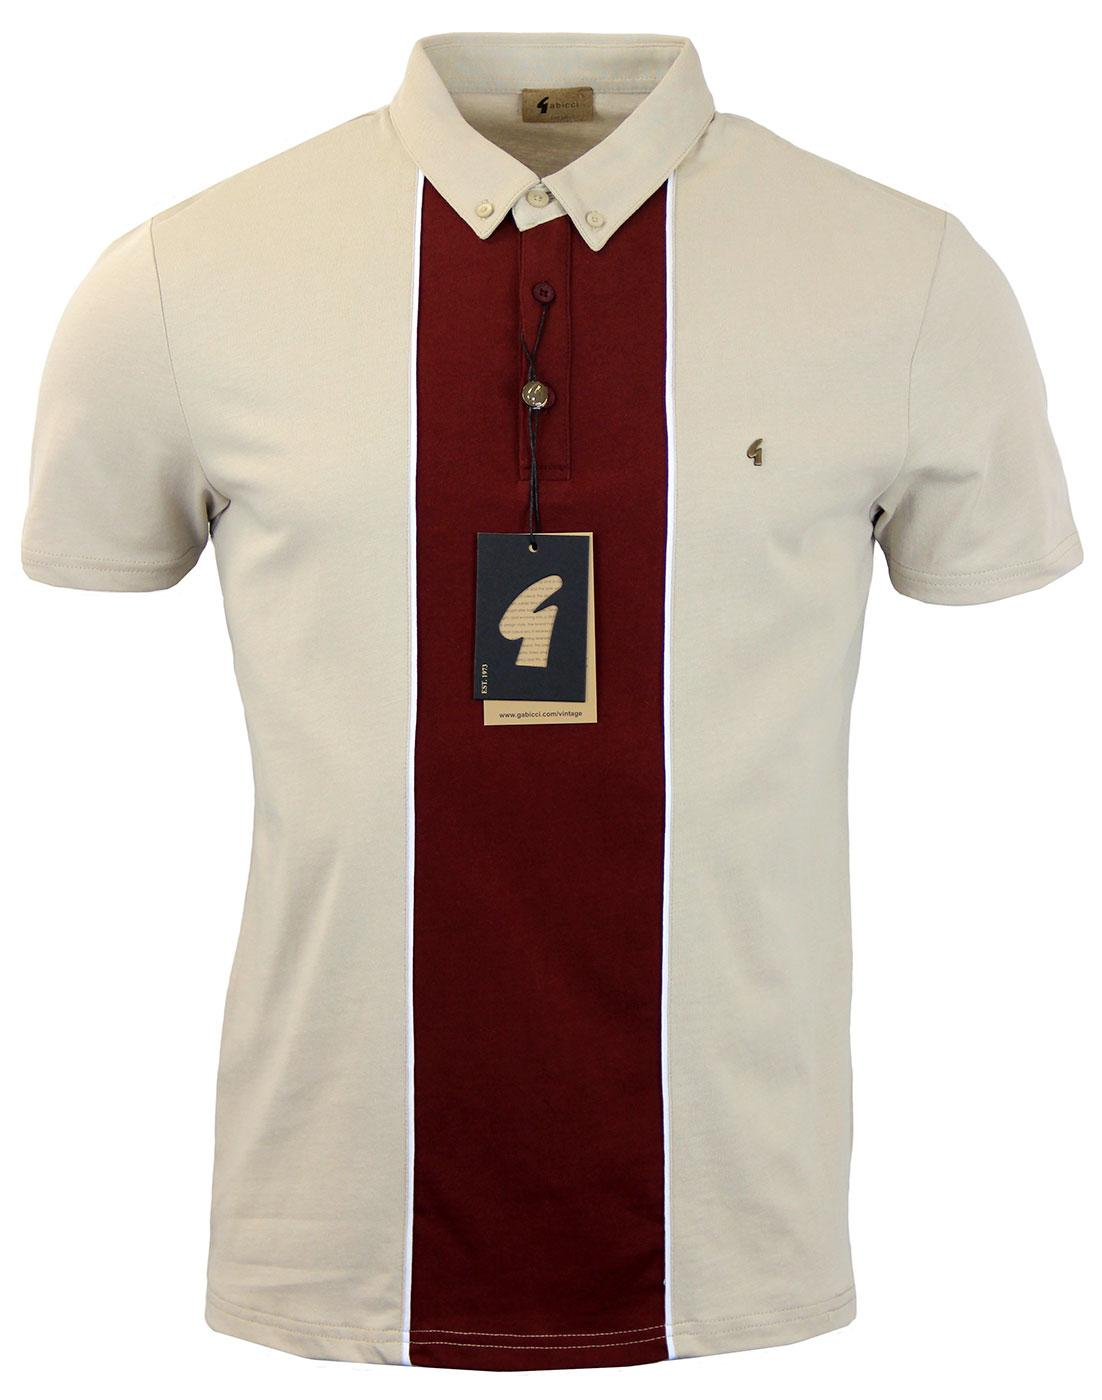 GABICCI VINTAGE Retro Mod Block Panel Polo Shirt